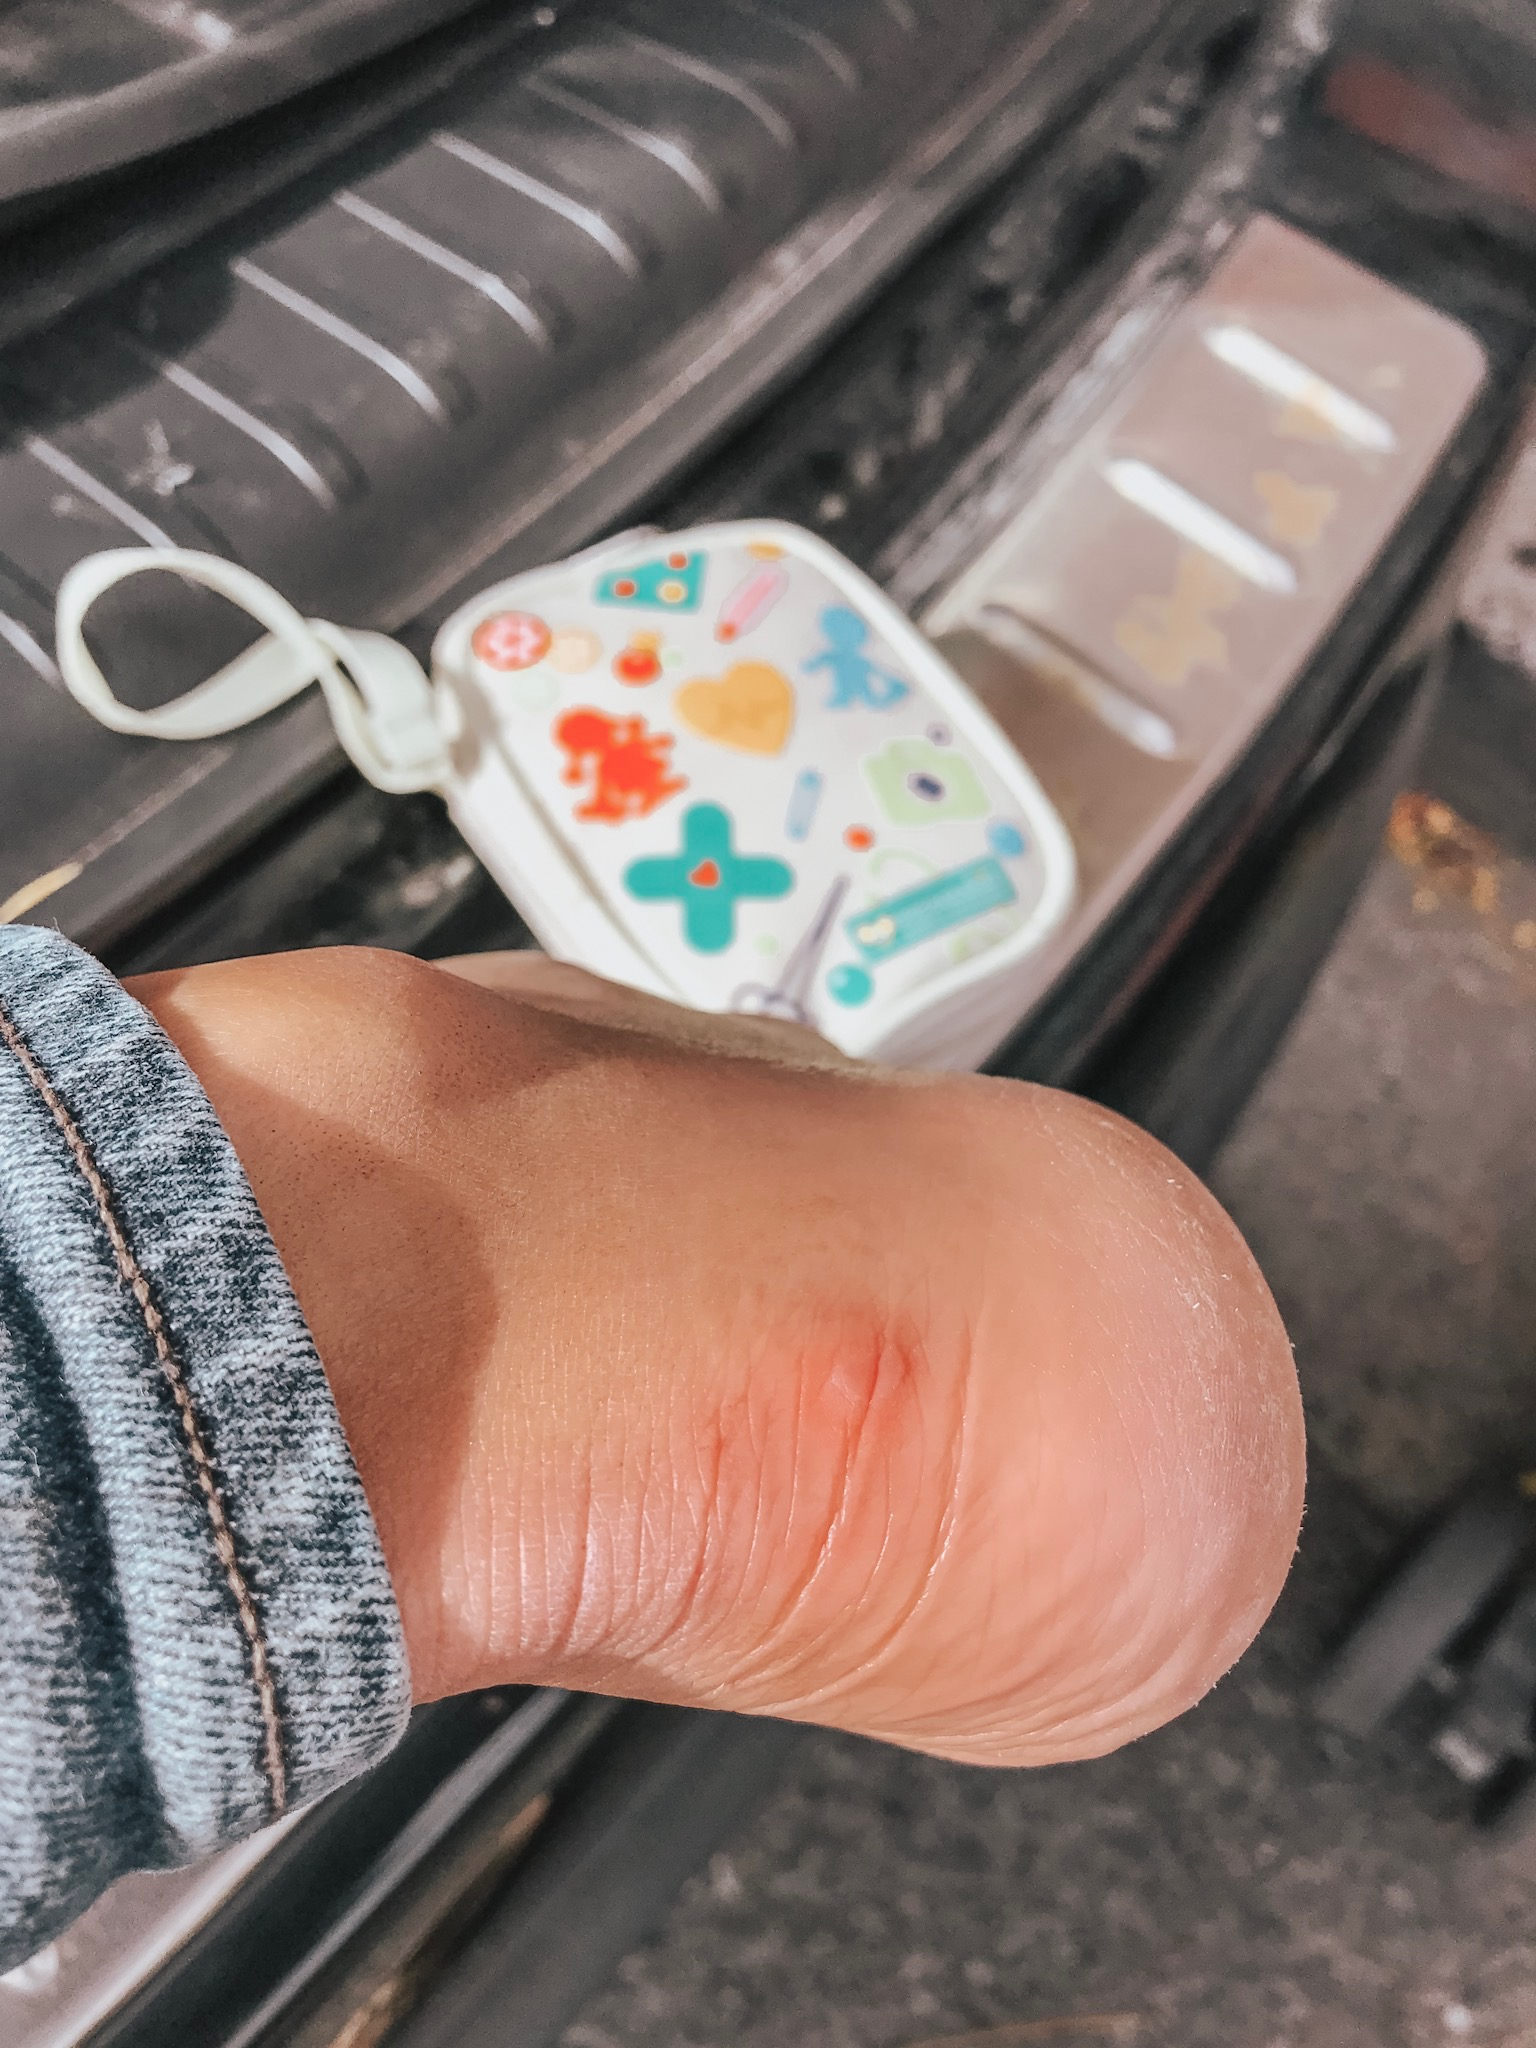 Holy Blisters — THANK GOODNESS we had some bandaids!